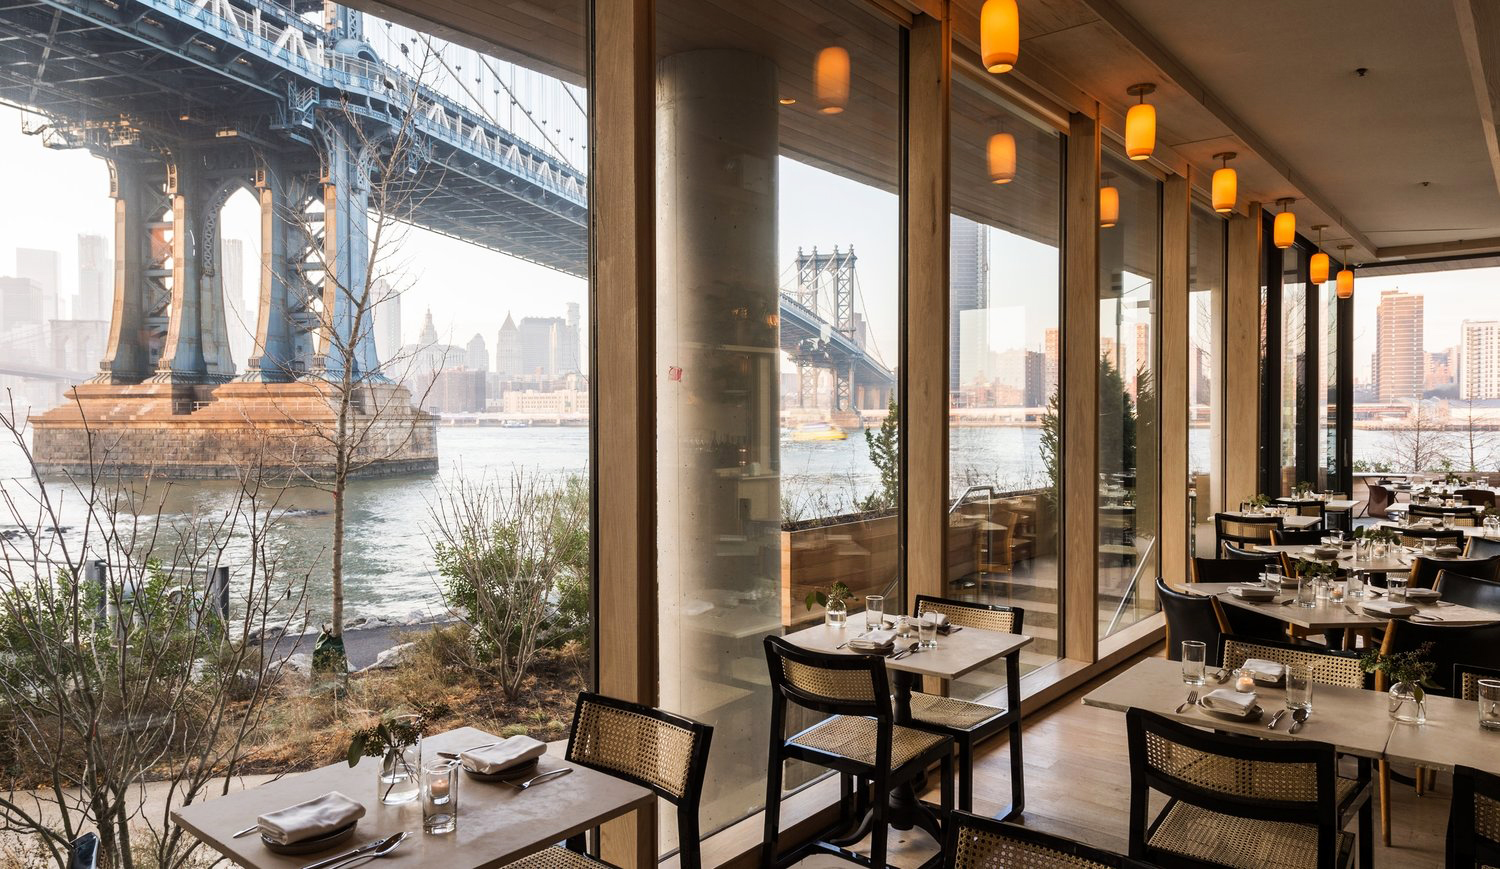 new venue restaurant seating bridge view